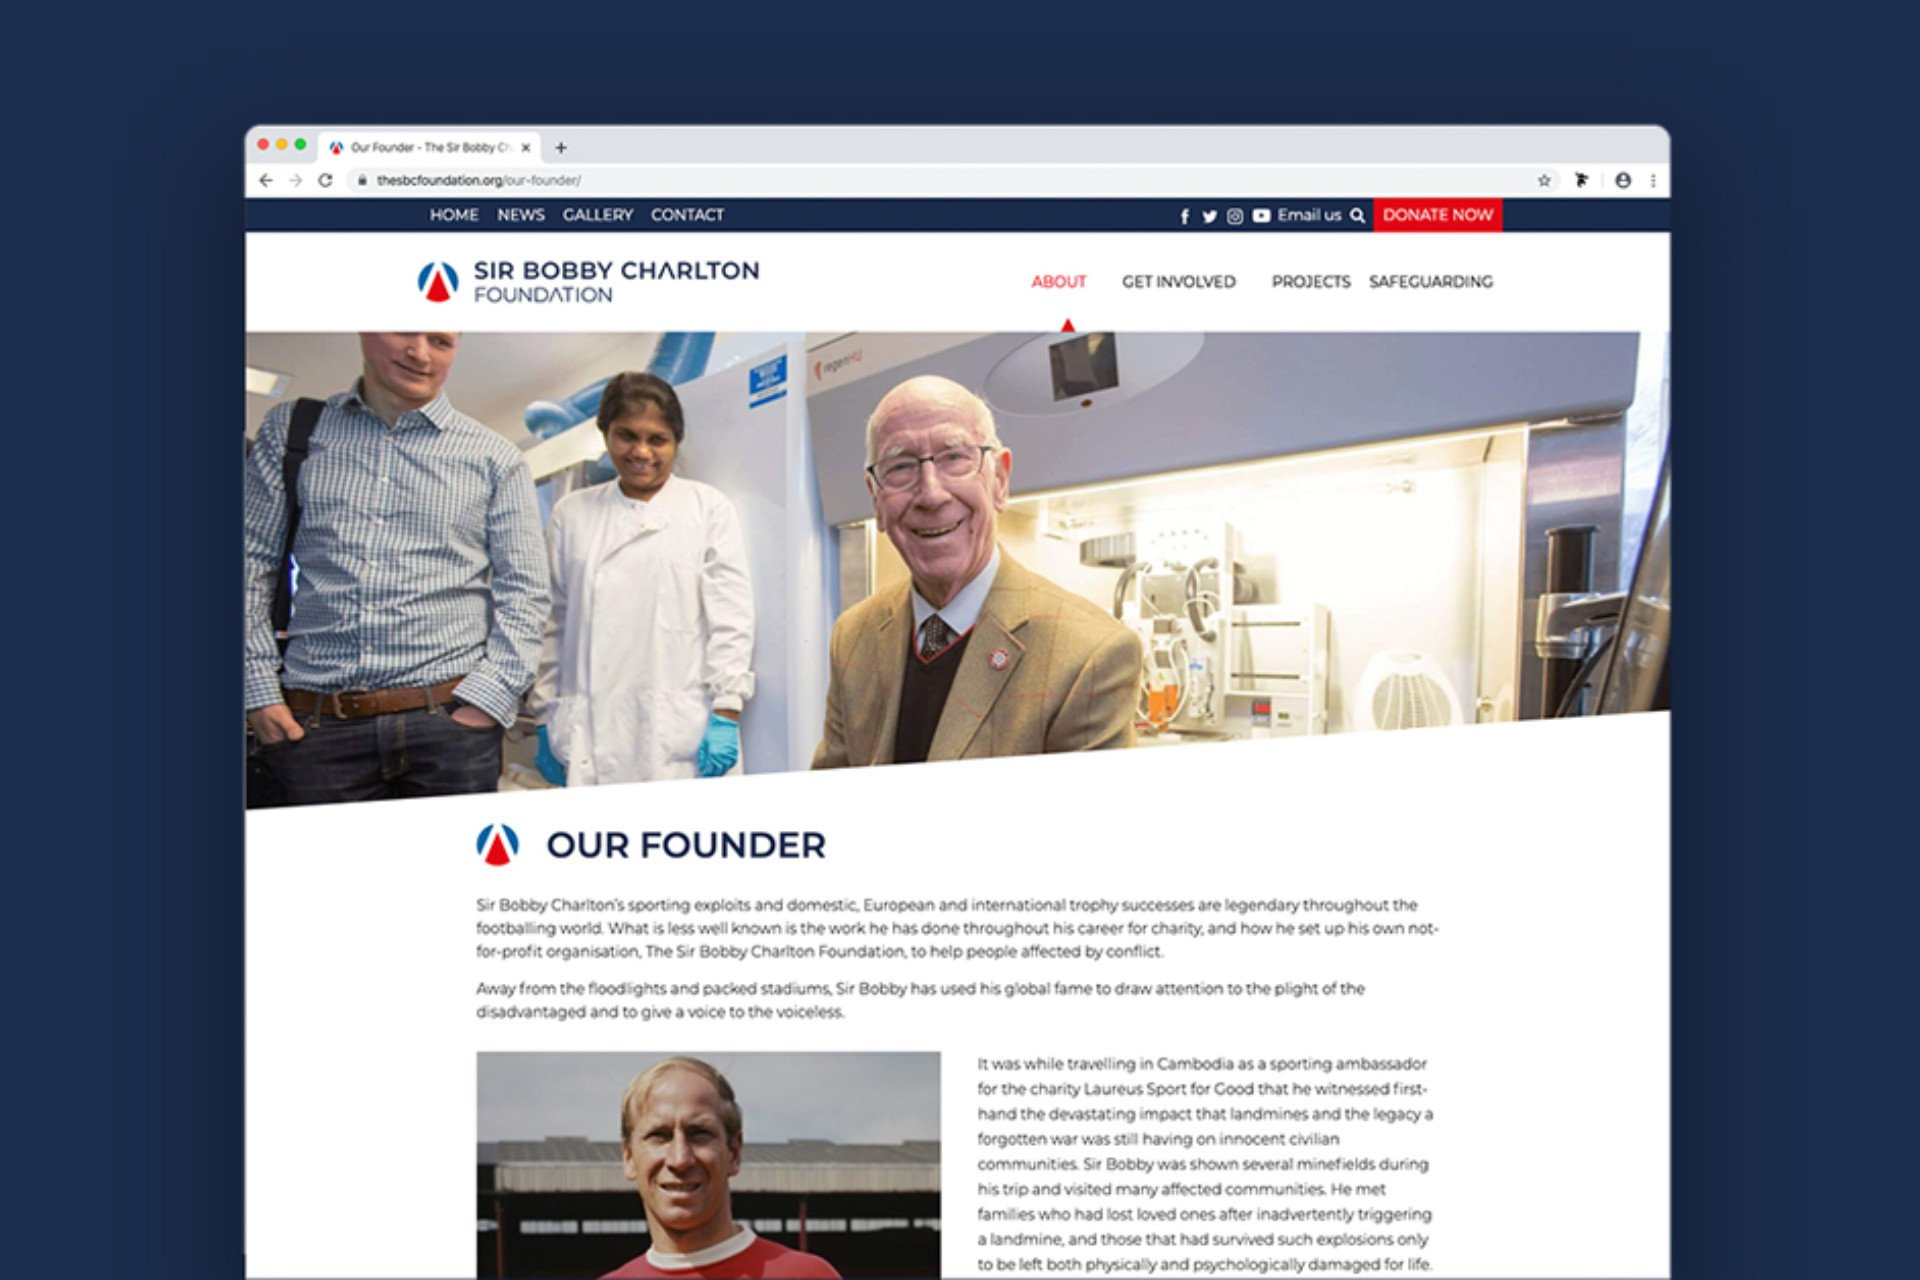 Website design and build for The Sir Bobby Charlton Foundation